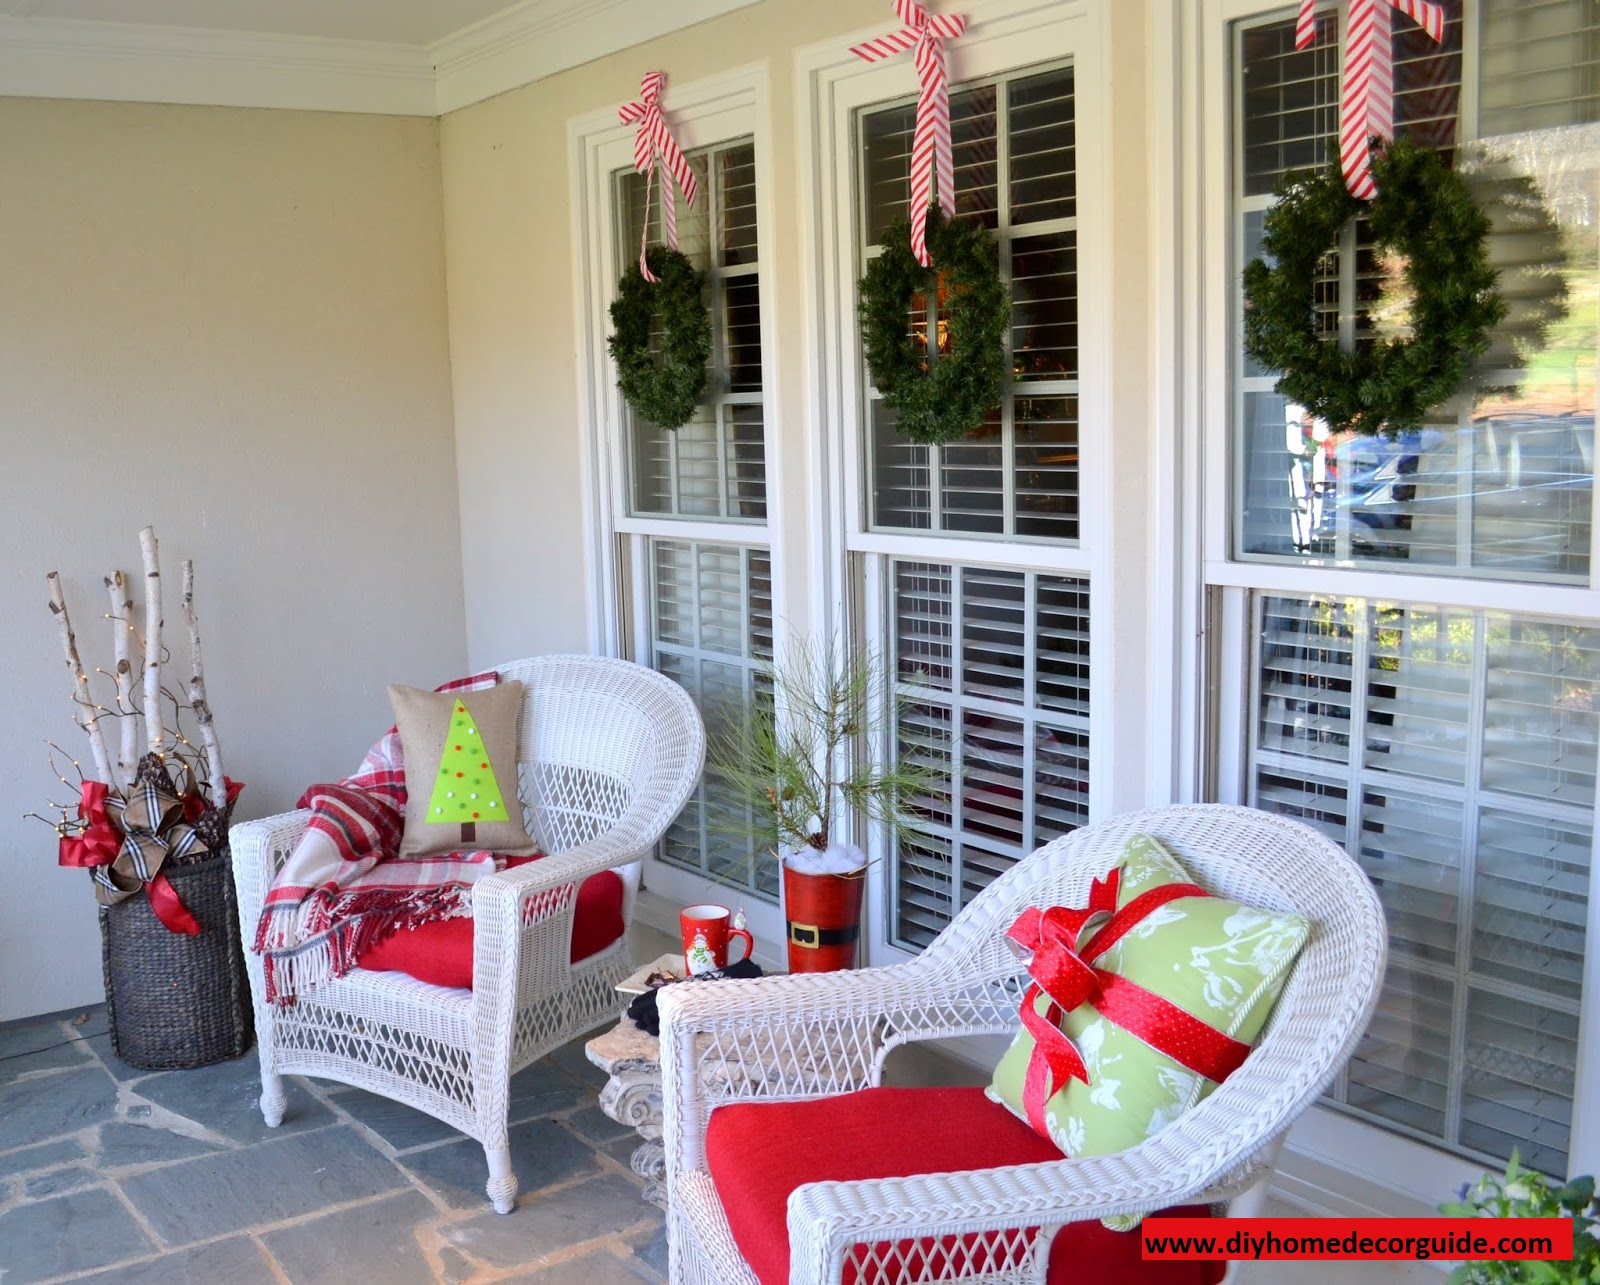 20 diy outdoor christmas decorations ideas 2014 for Simple patio decorating ideas